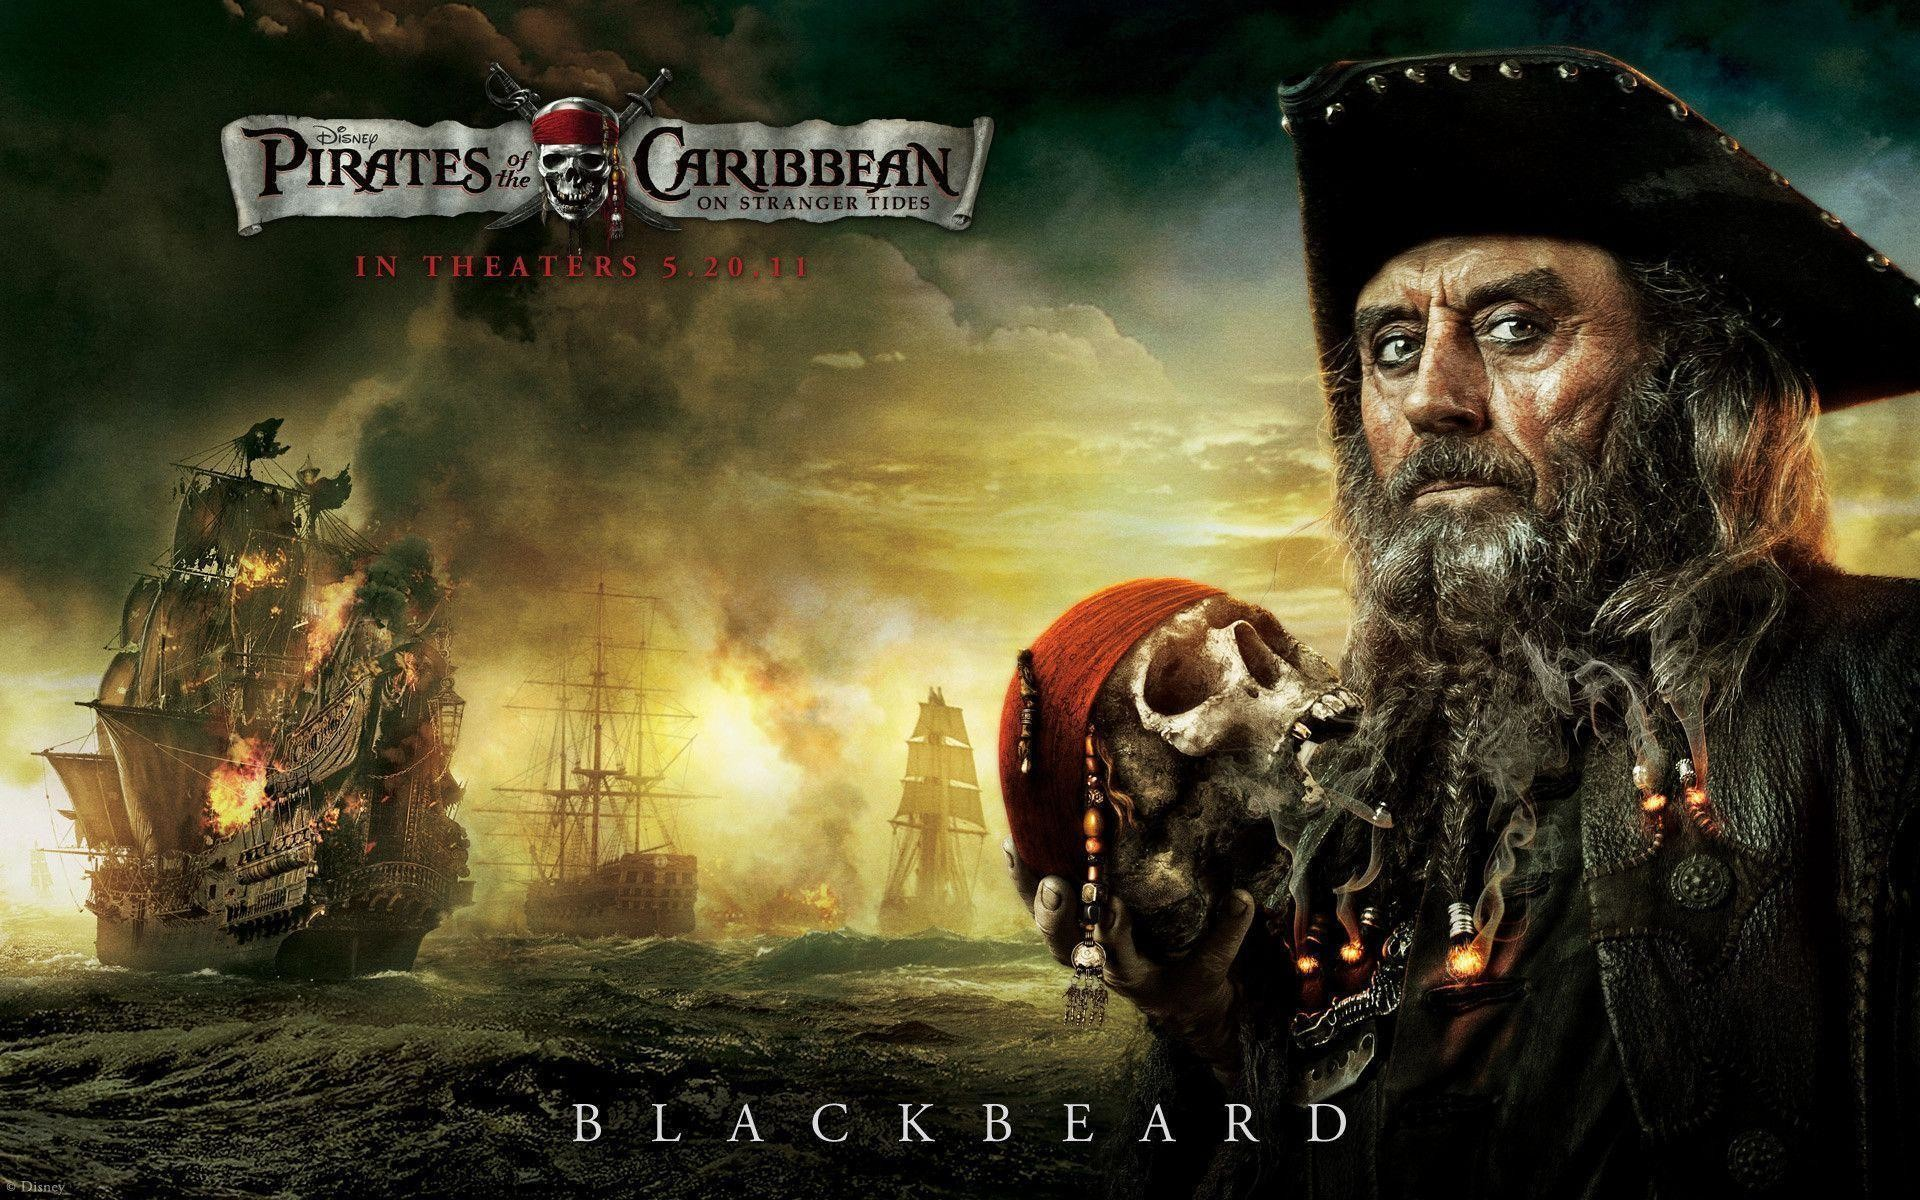 blackbeards ship in pirates of the caribbean 4 hdtv wallpapers and .